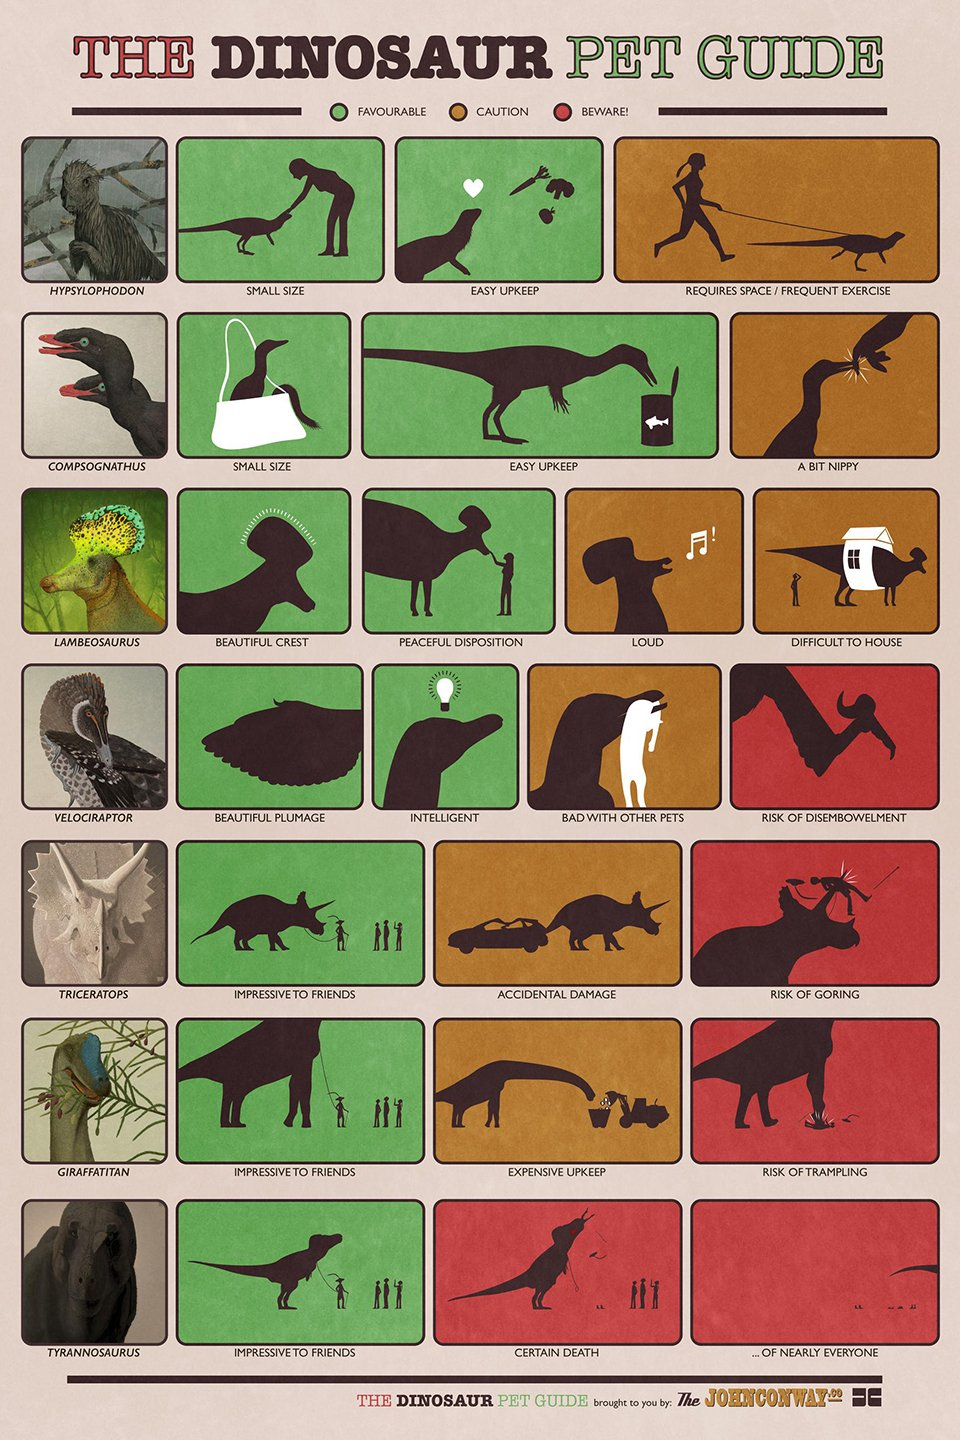 The Dinosaur Pet Guide